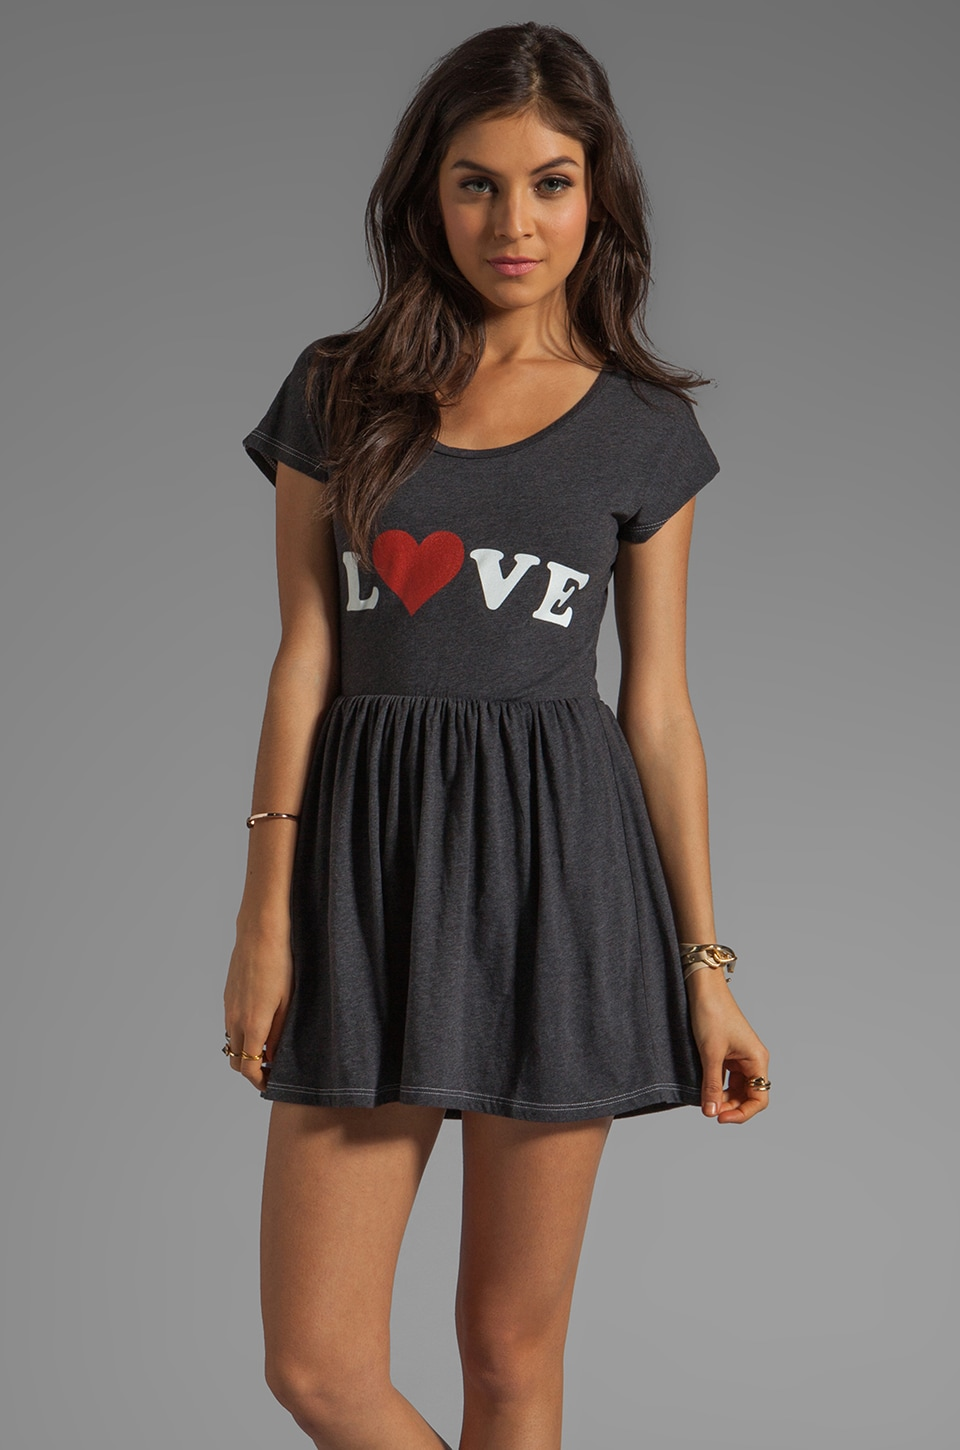 Local Celebrity Love Mini Dress in Black